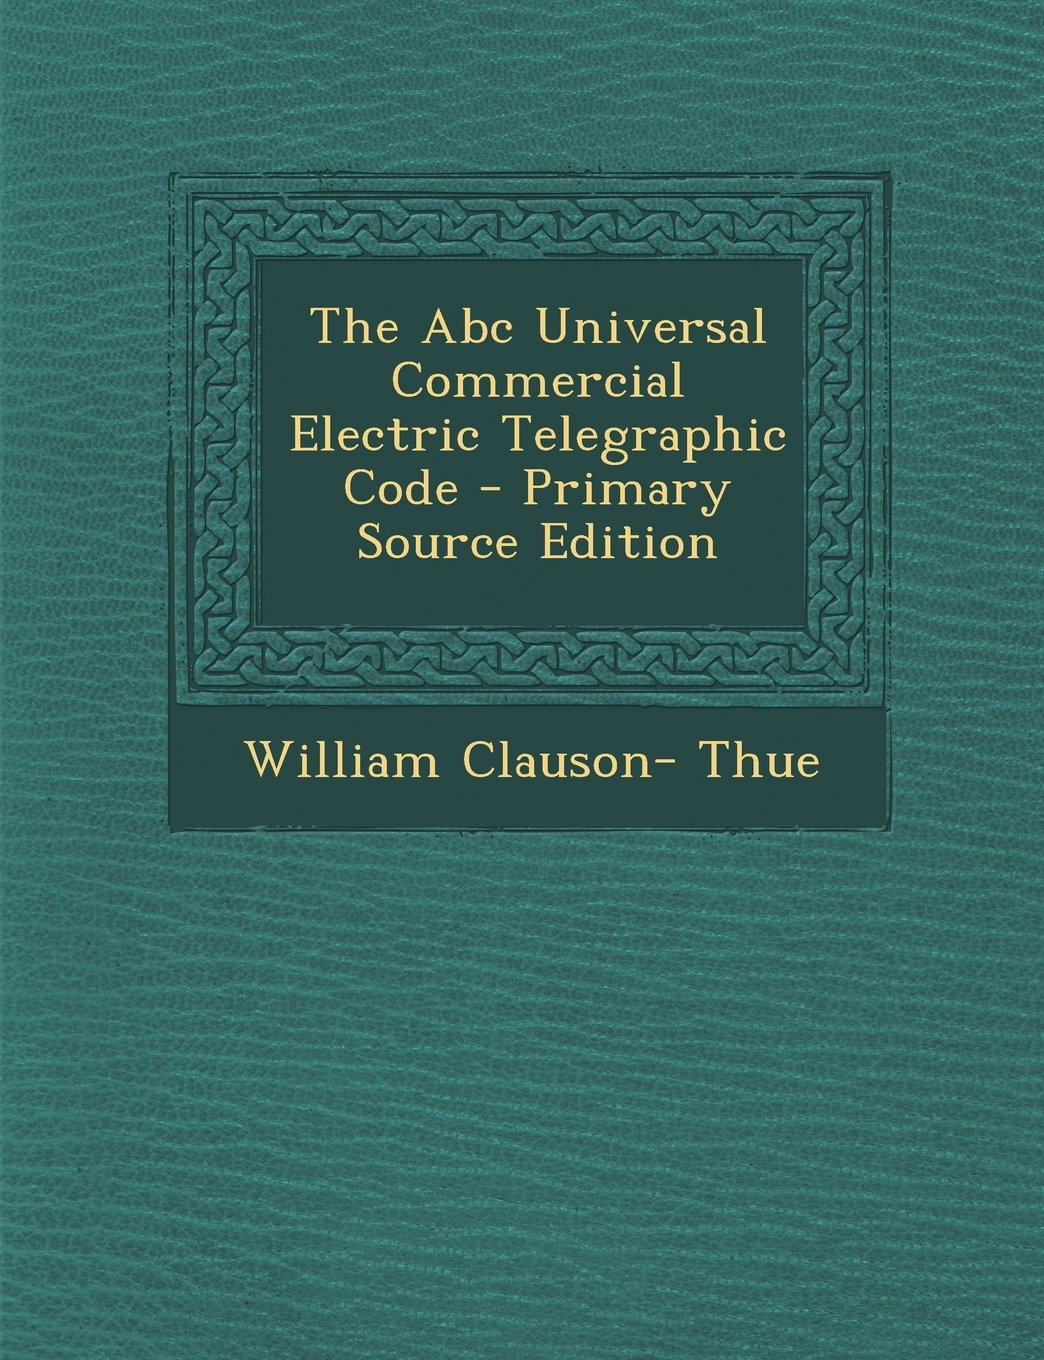 Download The ABC Universal Commercial Electric Telegraphic Code - Primary Source Edition PDF